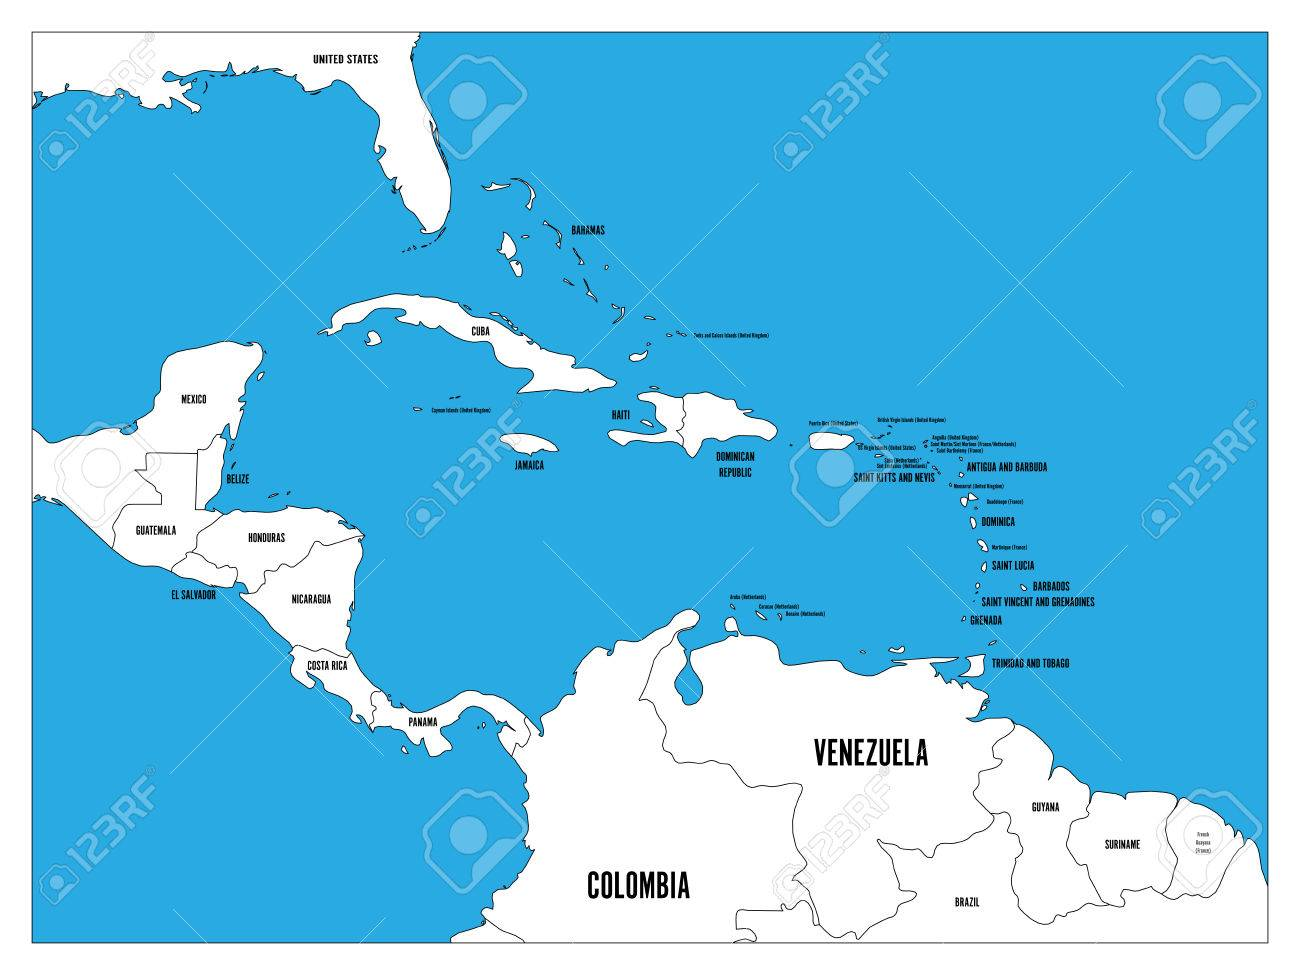 Central america and carribean states political map black outline central america and carribean states political map black outline borders with black country names labels gumiabroncs Image collections